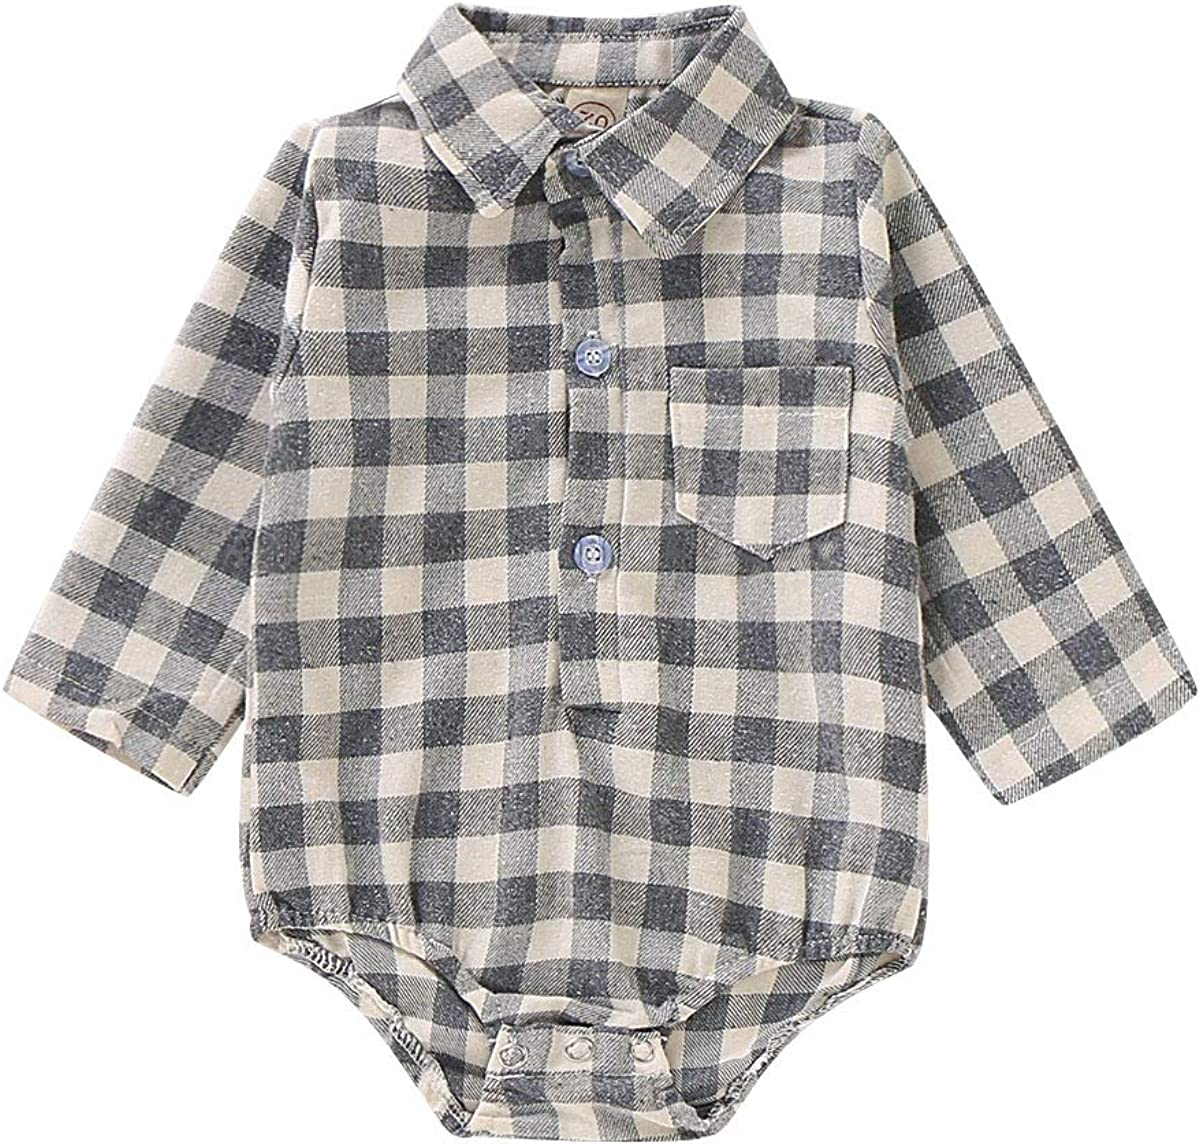 Newborn Baby Romper Infant Boys Girls Red Plaid Long Sleeve Button Down Black and White Flannel Shirt Winter Fall Clothes